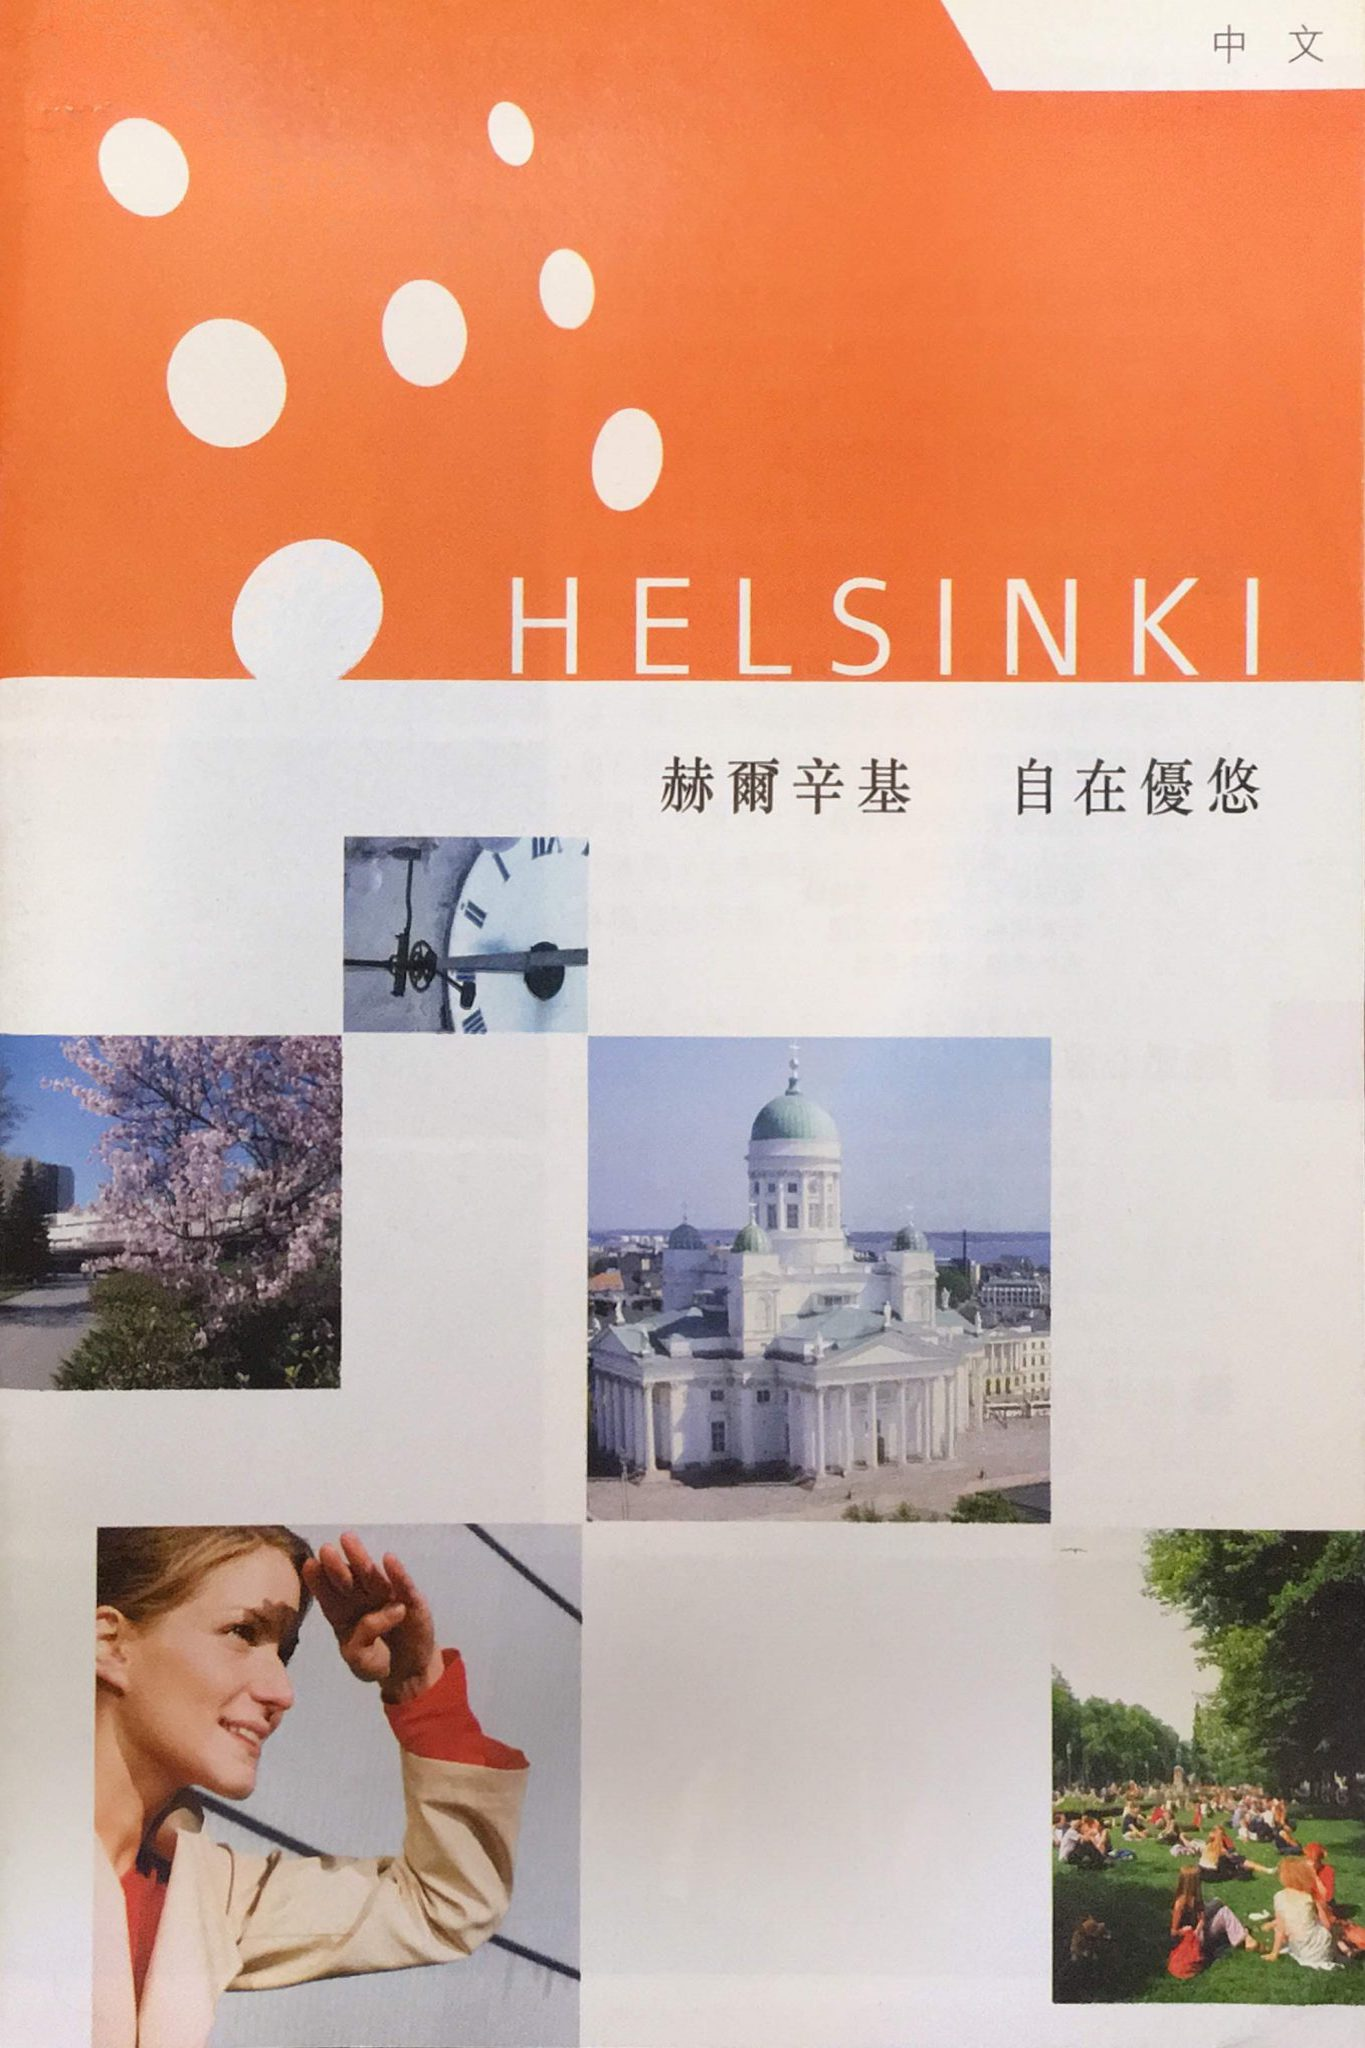 tekway-helsinki-city-travel-guide-e1585126109686-1358x2048